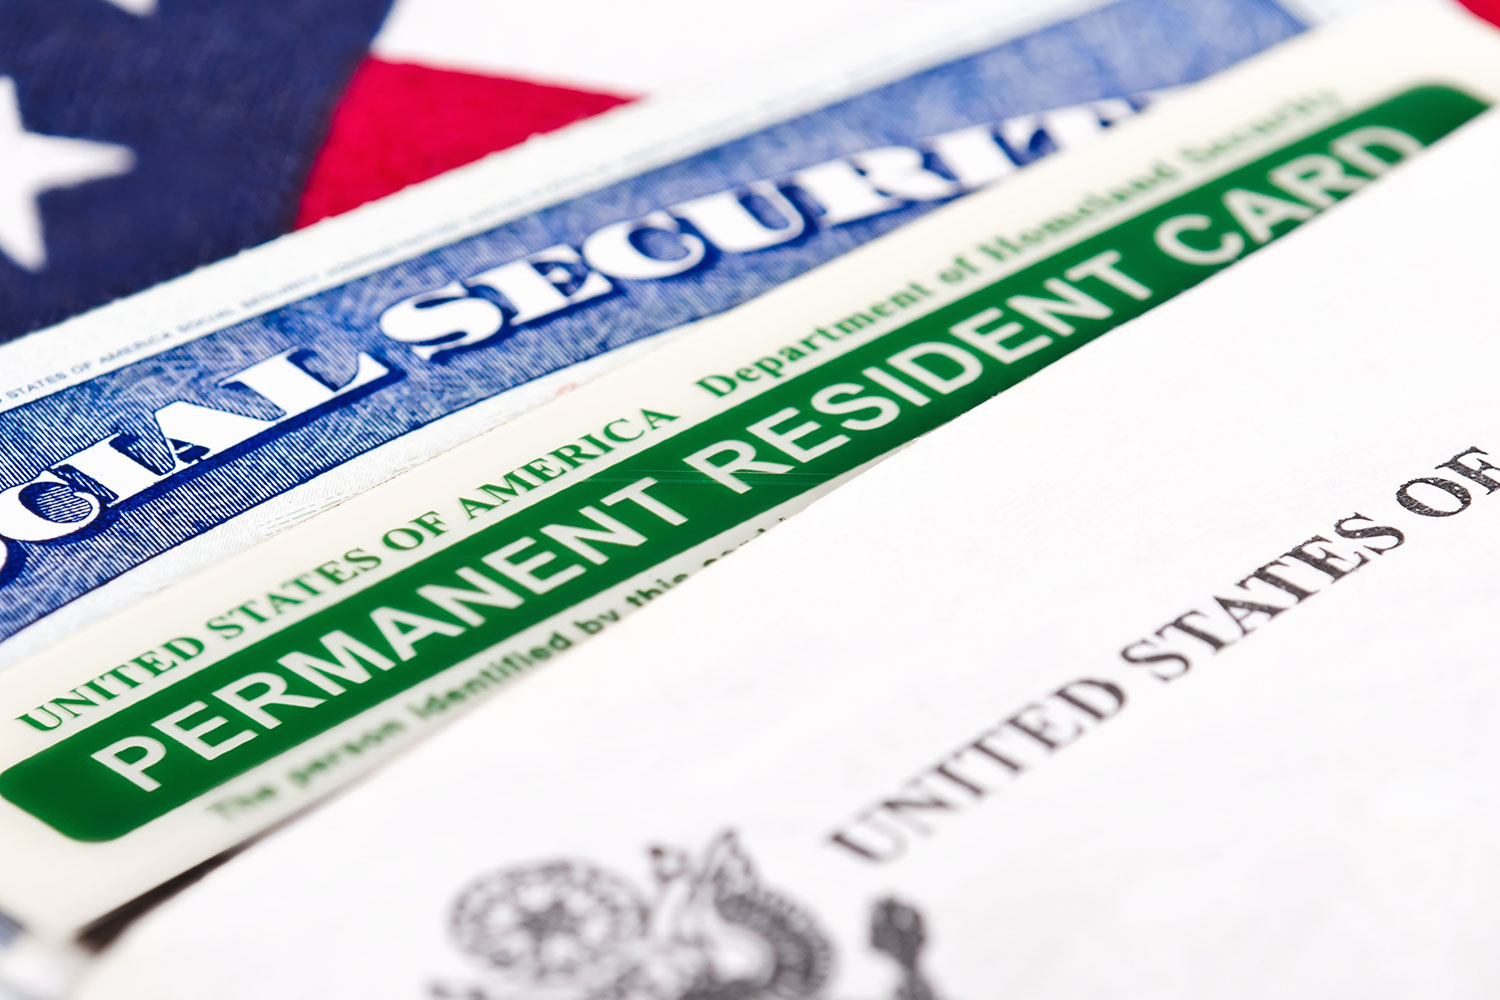 How To Avoid Losing Your LPR Or Green Card Status Despite Long Absences From The U.S.